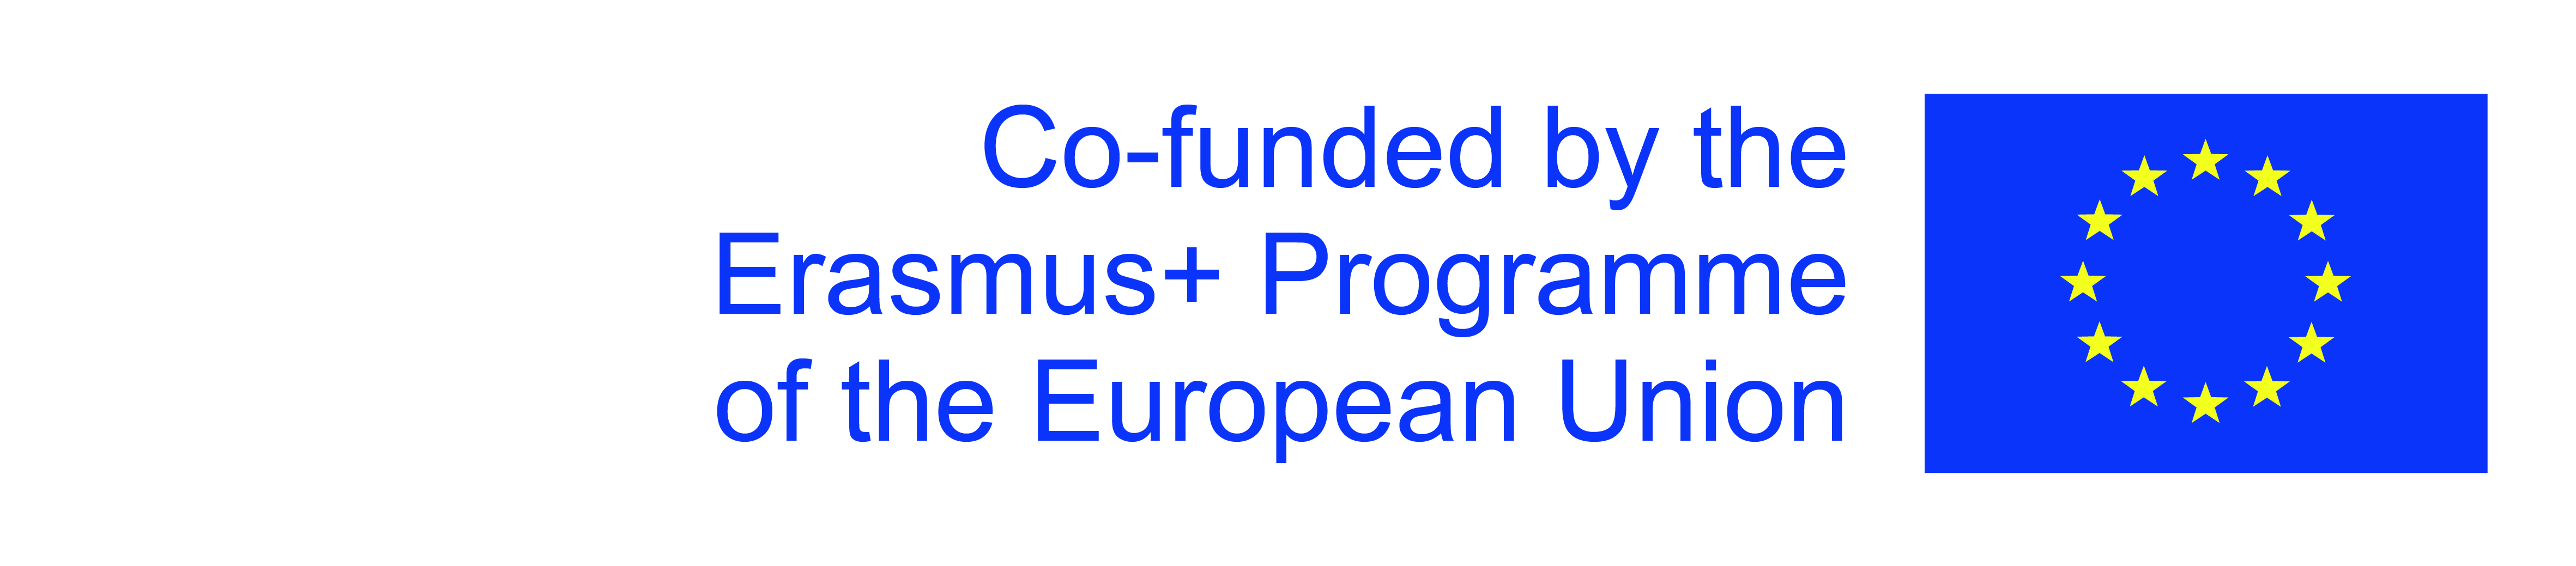 Co-funded by the Erasmus+ Programme of the European Union (tekst desno)